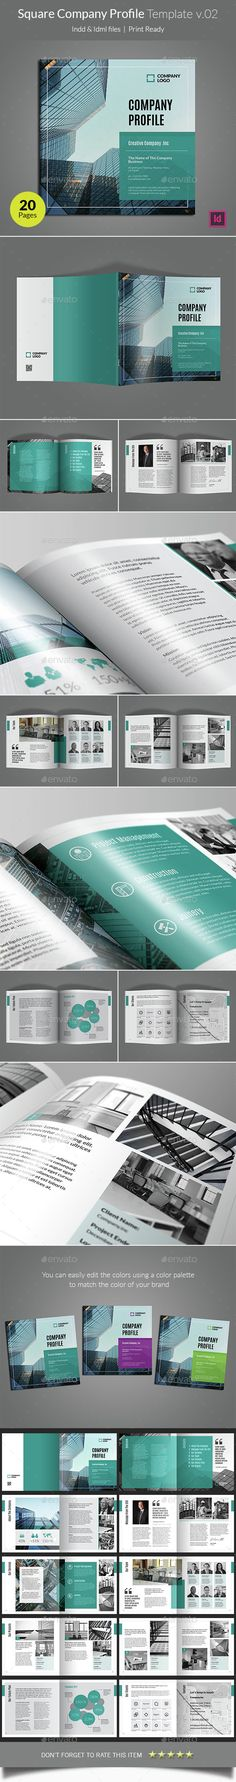 Company Profile Template InDesign INDD. Download here: http://graphicriver.net/item/company-profile-template-v02/15002318?ref=ksioks